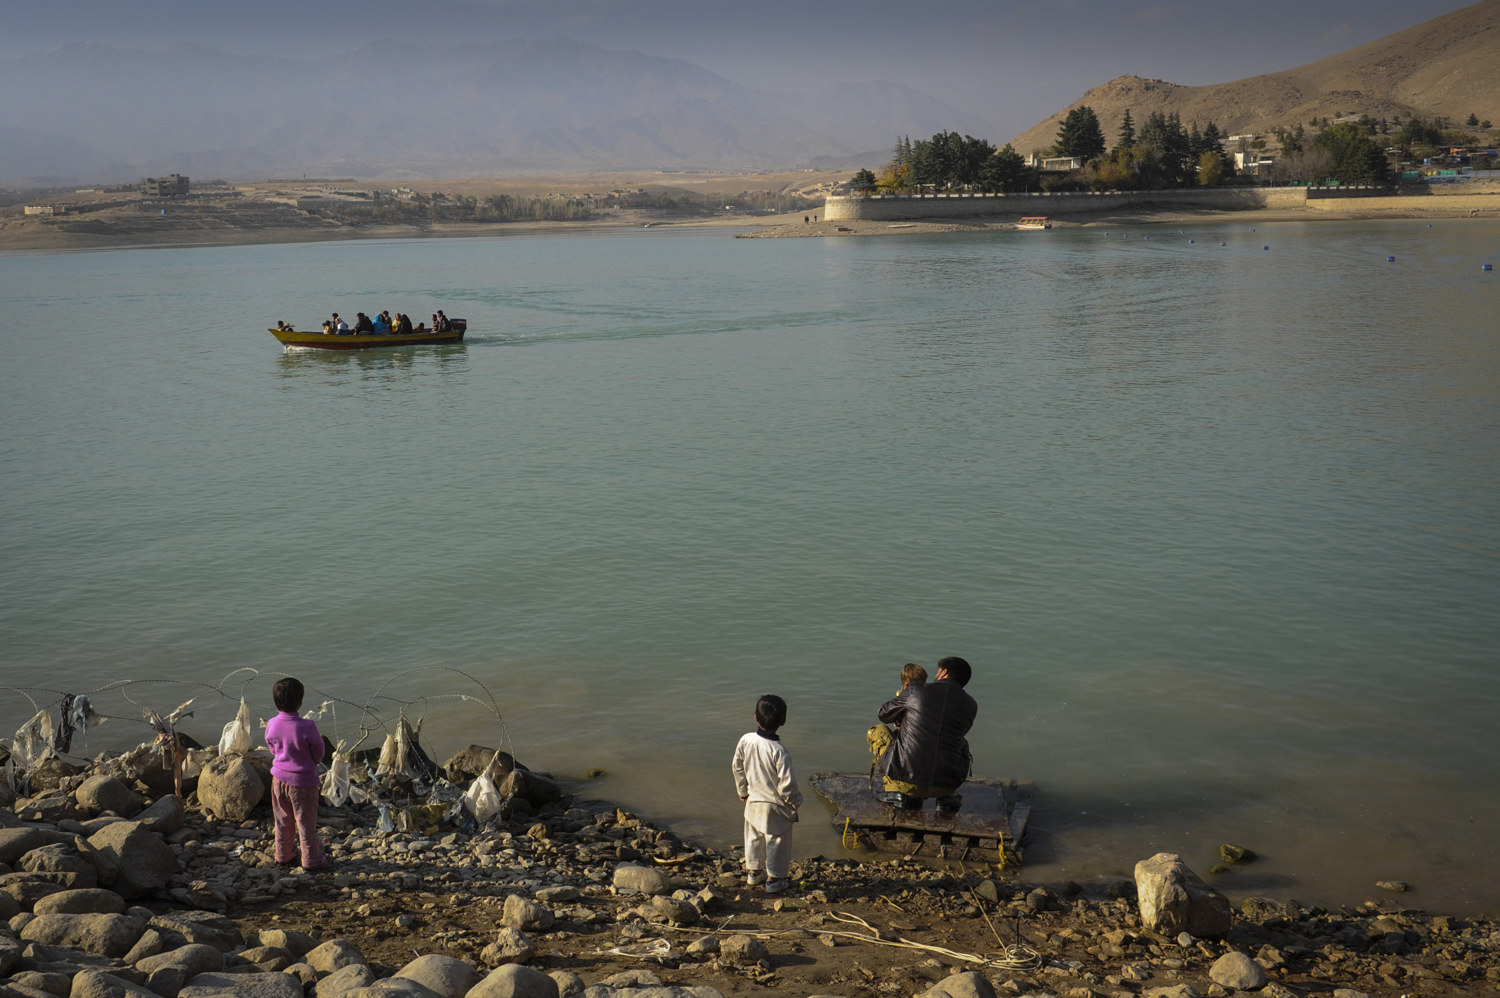 Lake Qargha 9km from Kabul, makes a great afternoon getaway from the city. Quarga is a man-made lake created by the damming of the Kabul river and is a lovely recreational place for Afghans with clean water for swimming, paddle boats, motor boats and places for families to gather and picnic.